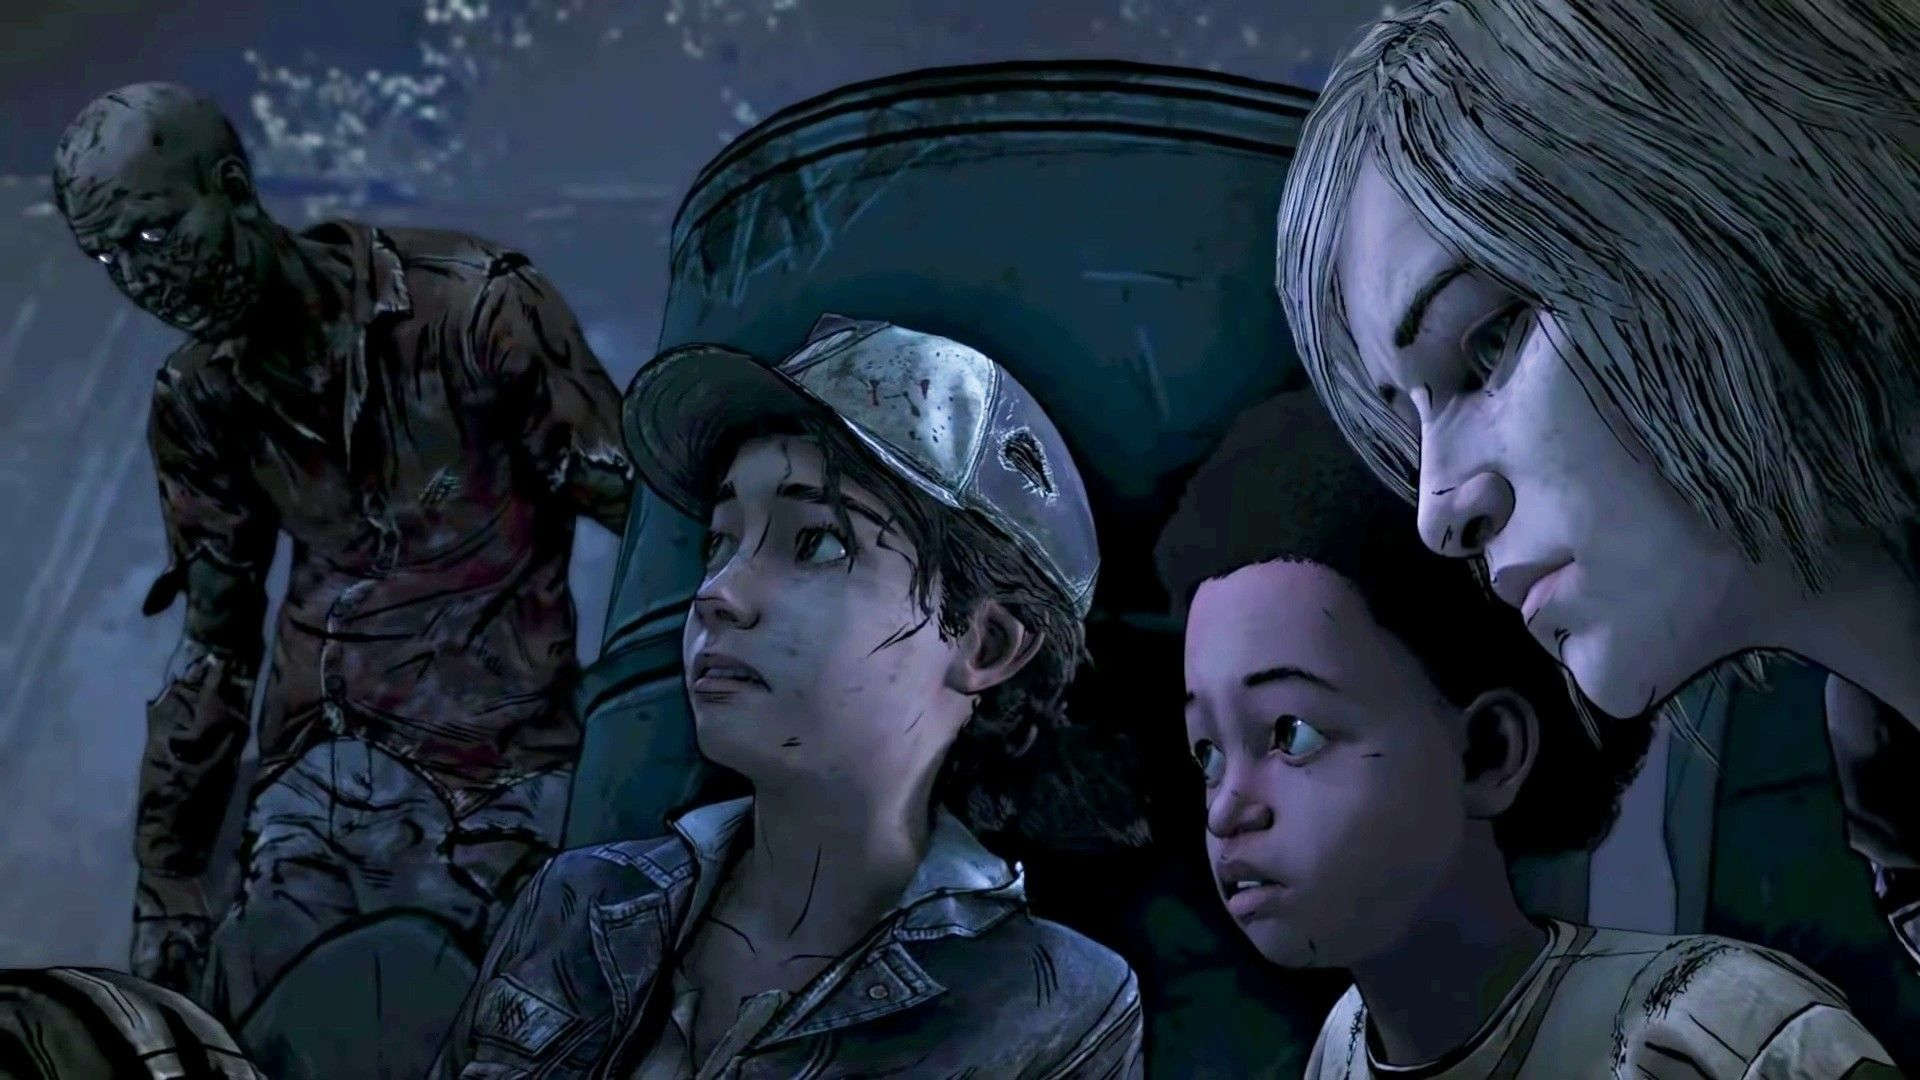 Clementine Aj And Violet The Walking Dead The Walking Dead Telltale Walking Dead Game Clementine Walking Dead